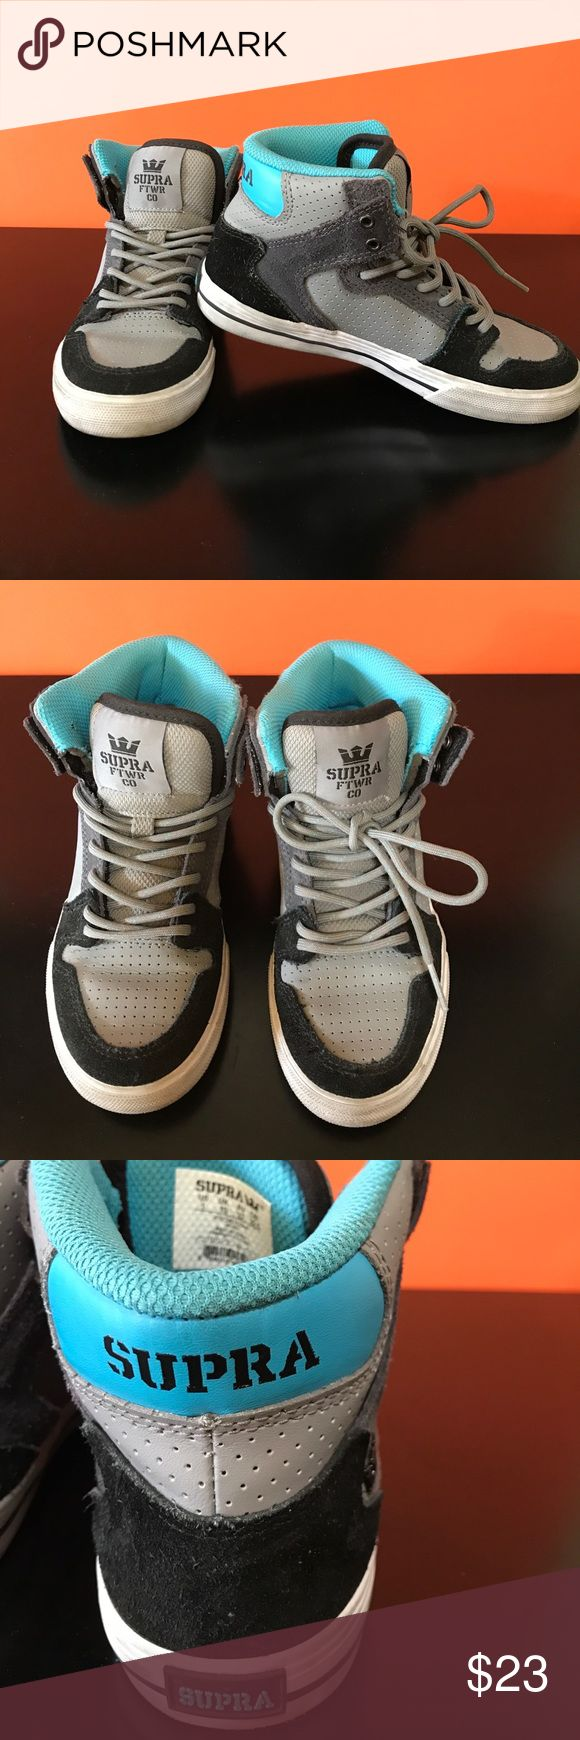 Boys Supra sneaker Aqua gray and black with suede and leather.  Clean and ready to run, skip and hop in.  Cool kid sneakers. Supra Shoes Sneakers